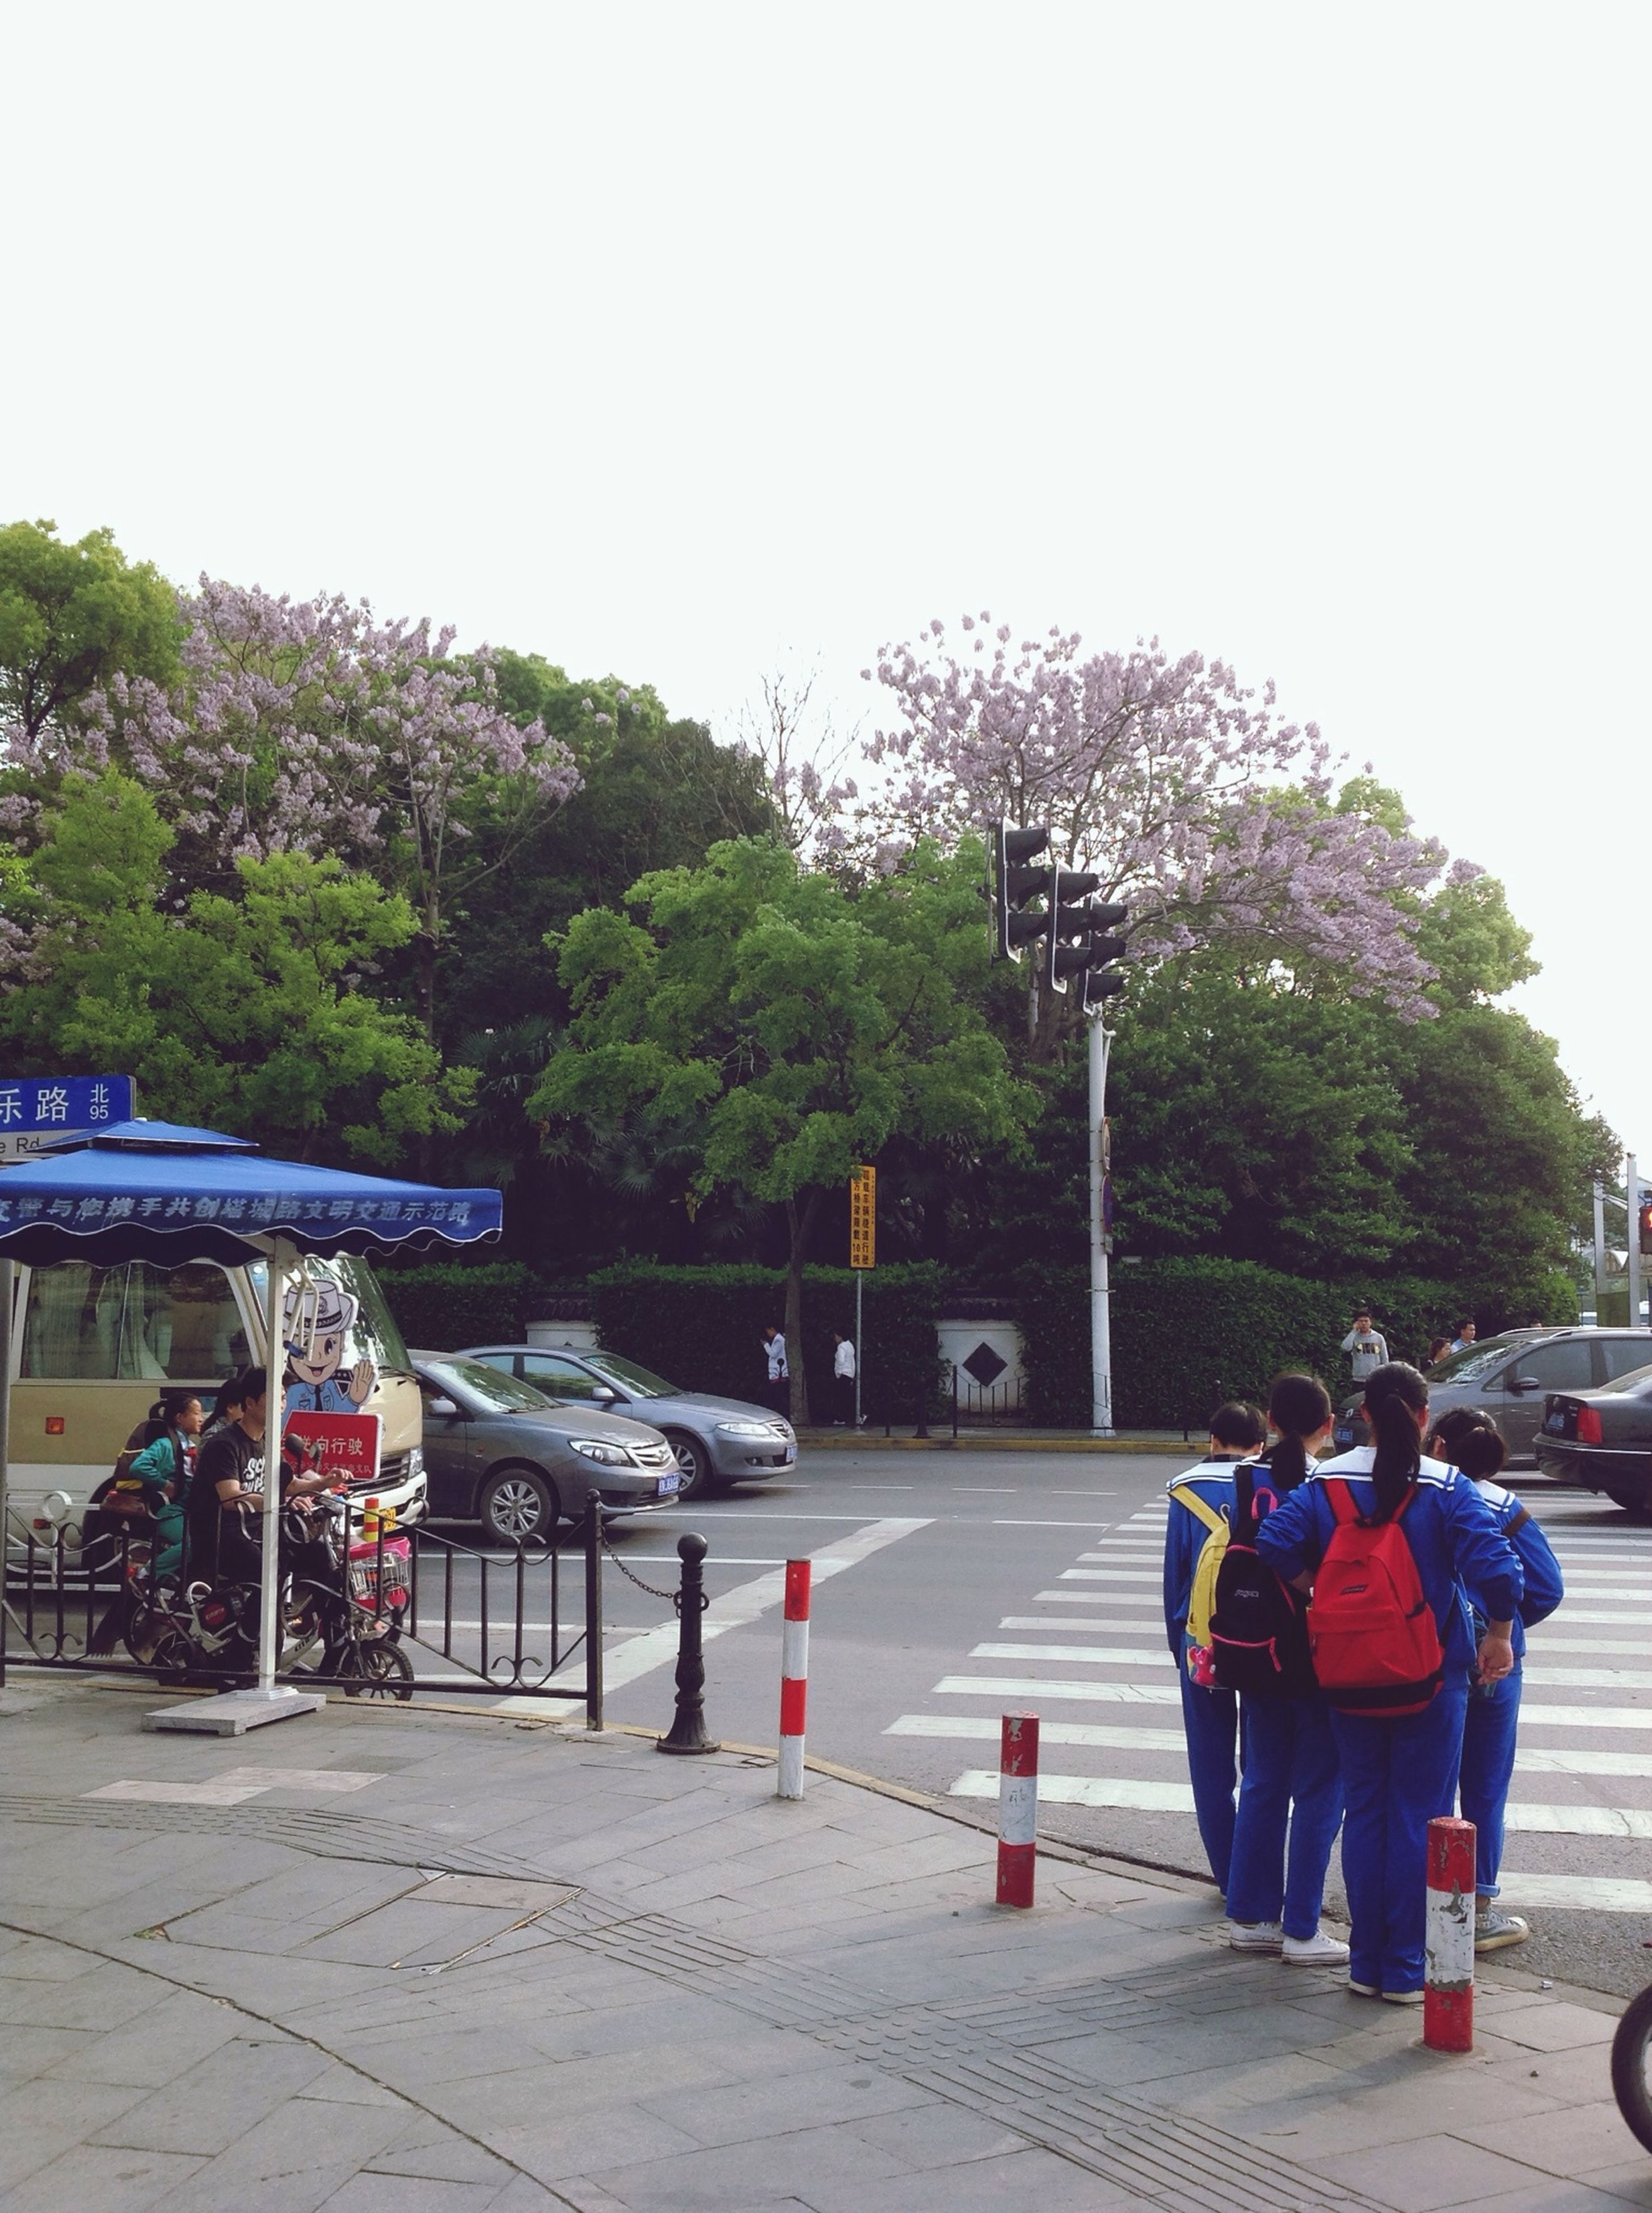 tree, men, lifestyles, person, leisure activity, clear sky, transportation, street, walking, full length, mode of transport, large group of people, rear view, road, sitting, land vehicle, day, sky, casual clothing